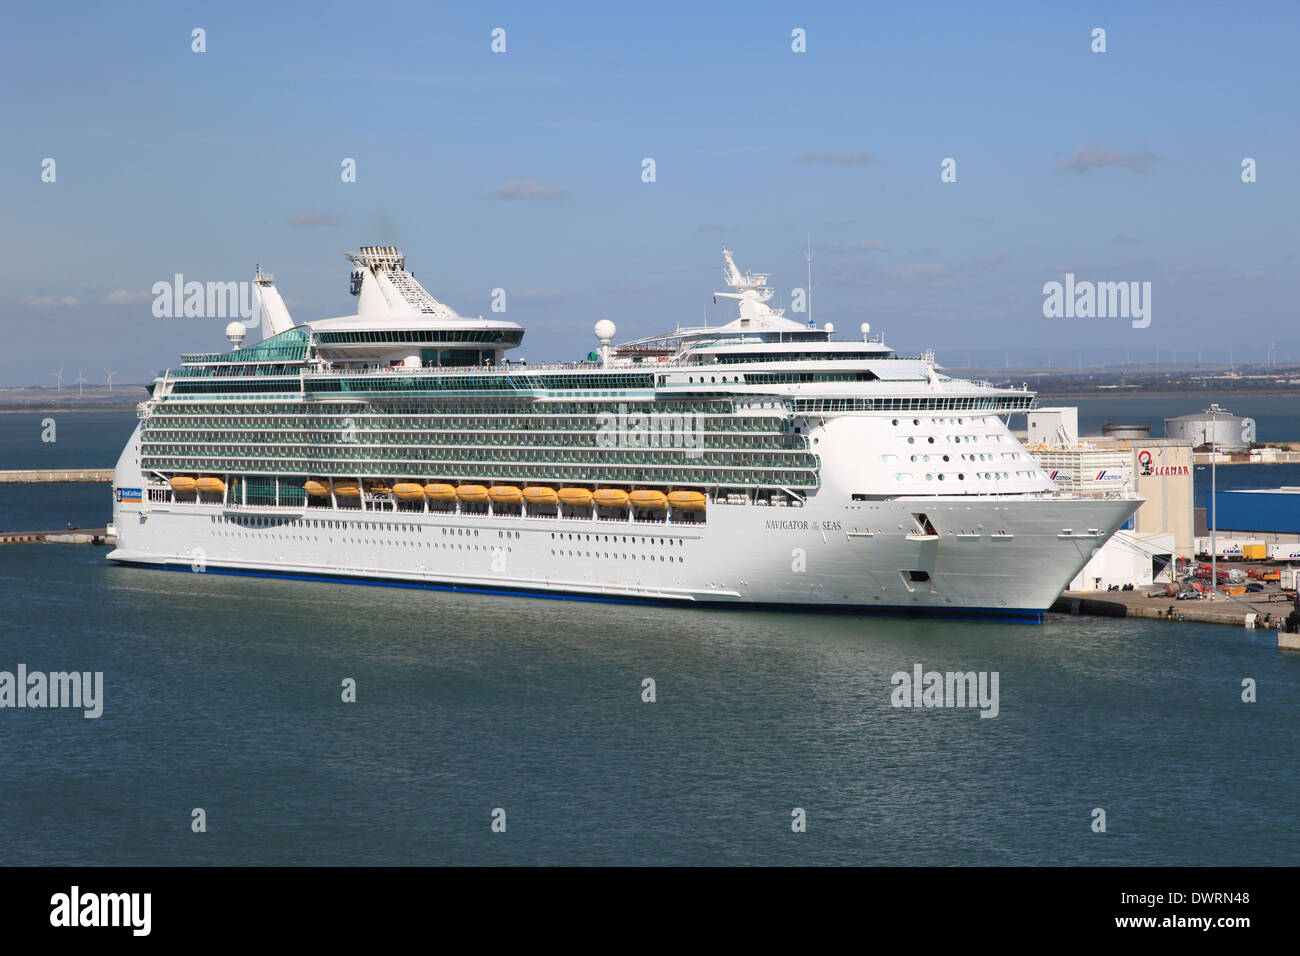 Royal Caribbean cruise ship Navigator of the Seas berthed in Cadiz Spain Stock Photo